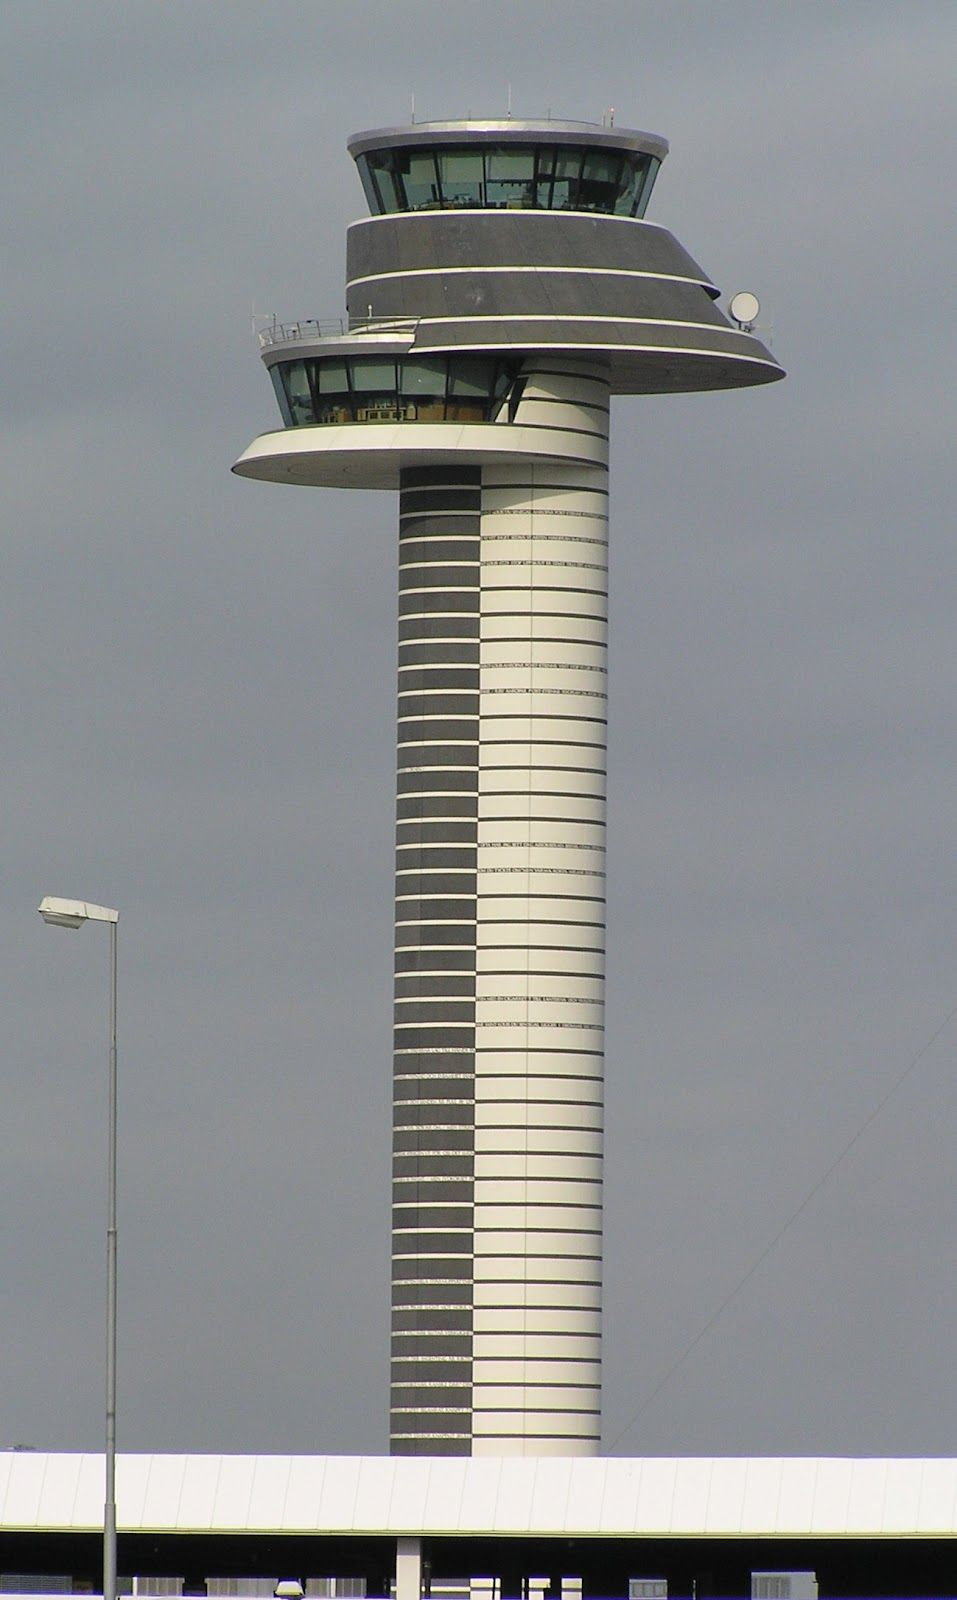 Awesome Air Traffic Control Towers Across the World (With